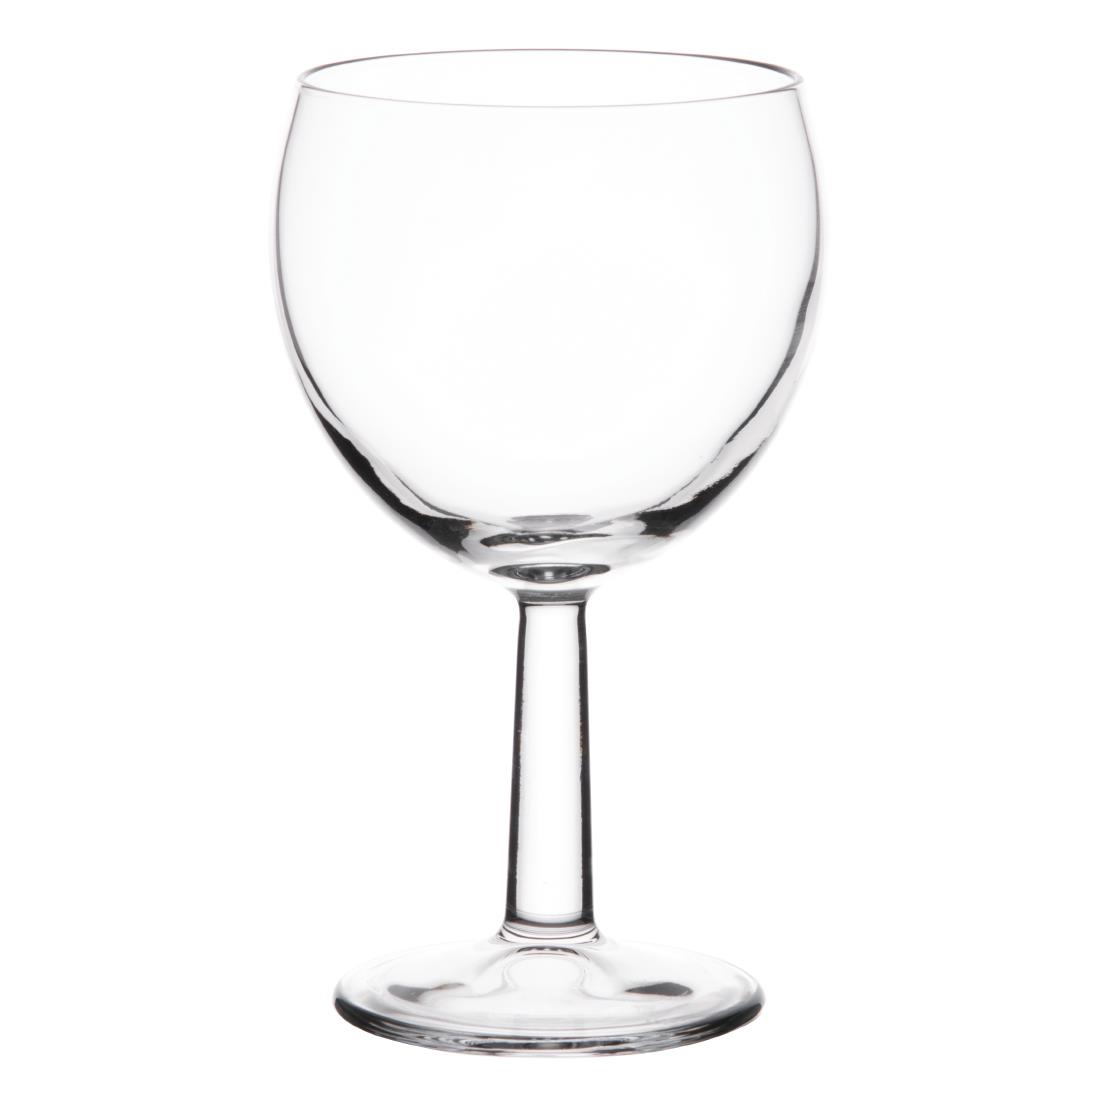 Image of Arcoroc Ballon Wine Goblets 190ml (Pack of 12) Pack of 12